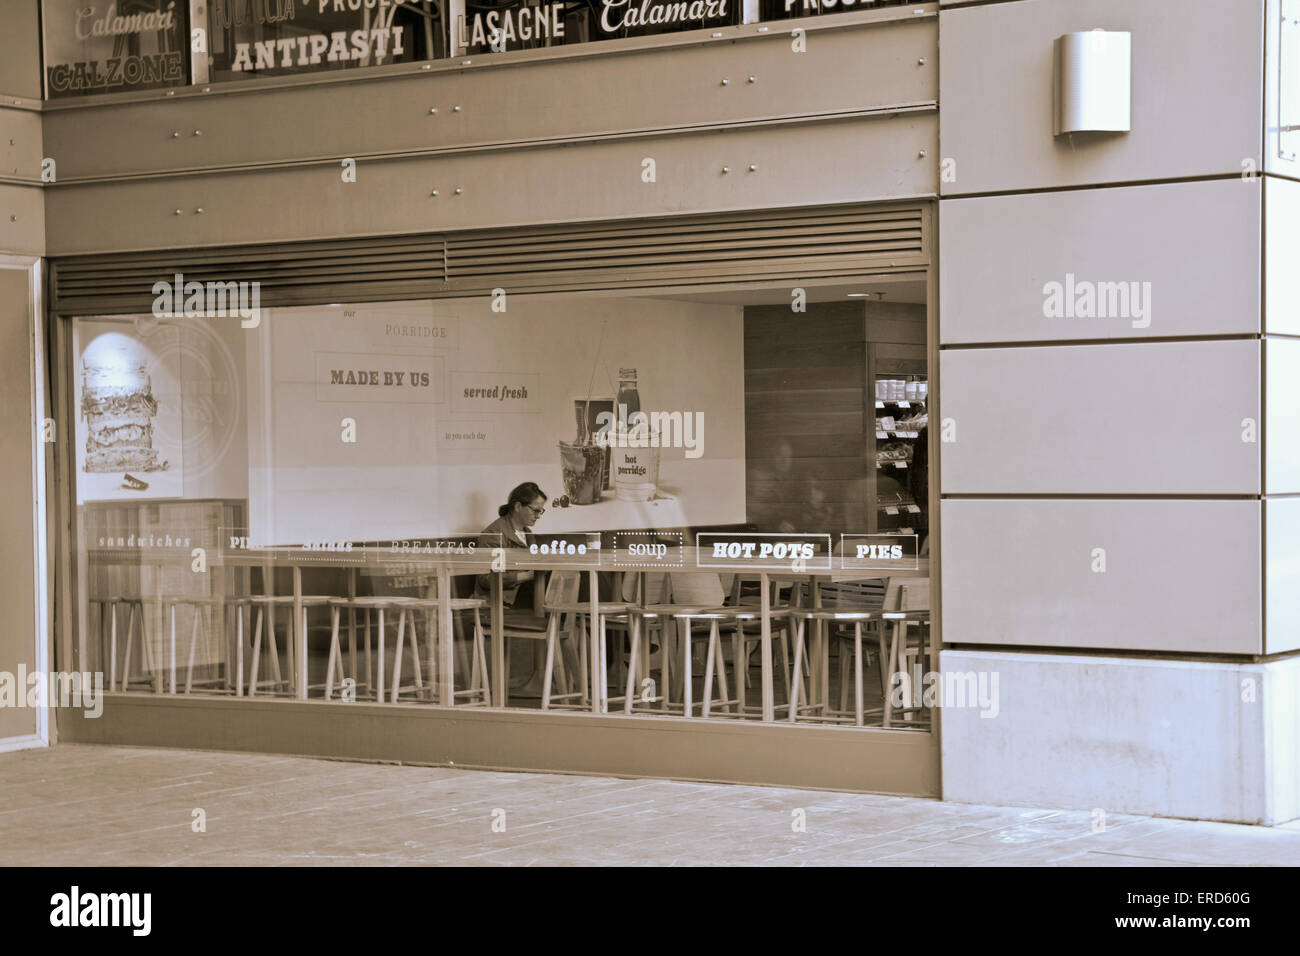 View through window of One person sitting in a cafeteria in London United Kingdom - Stock Image